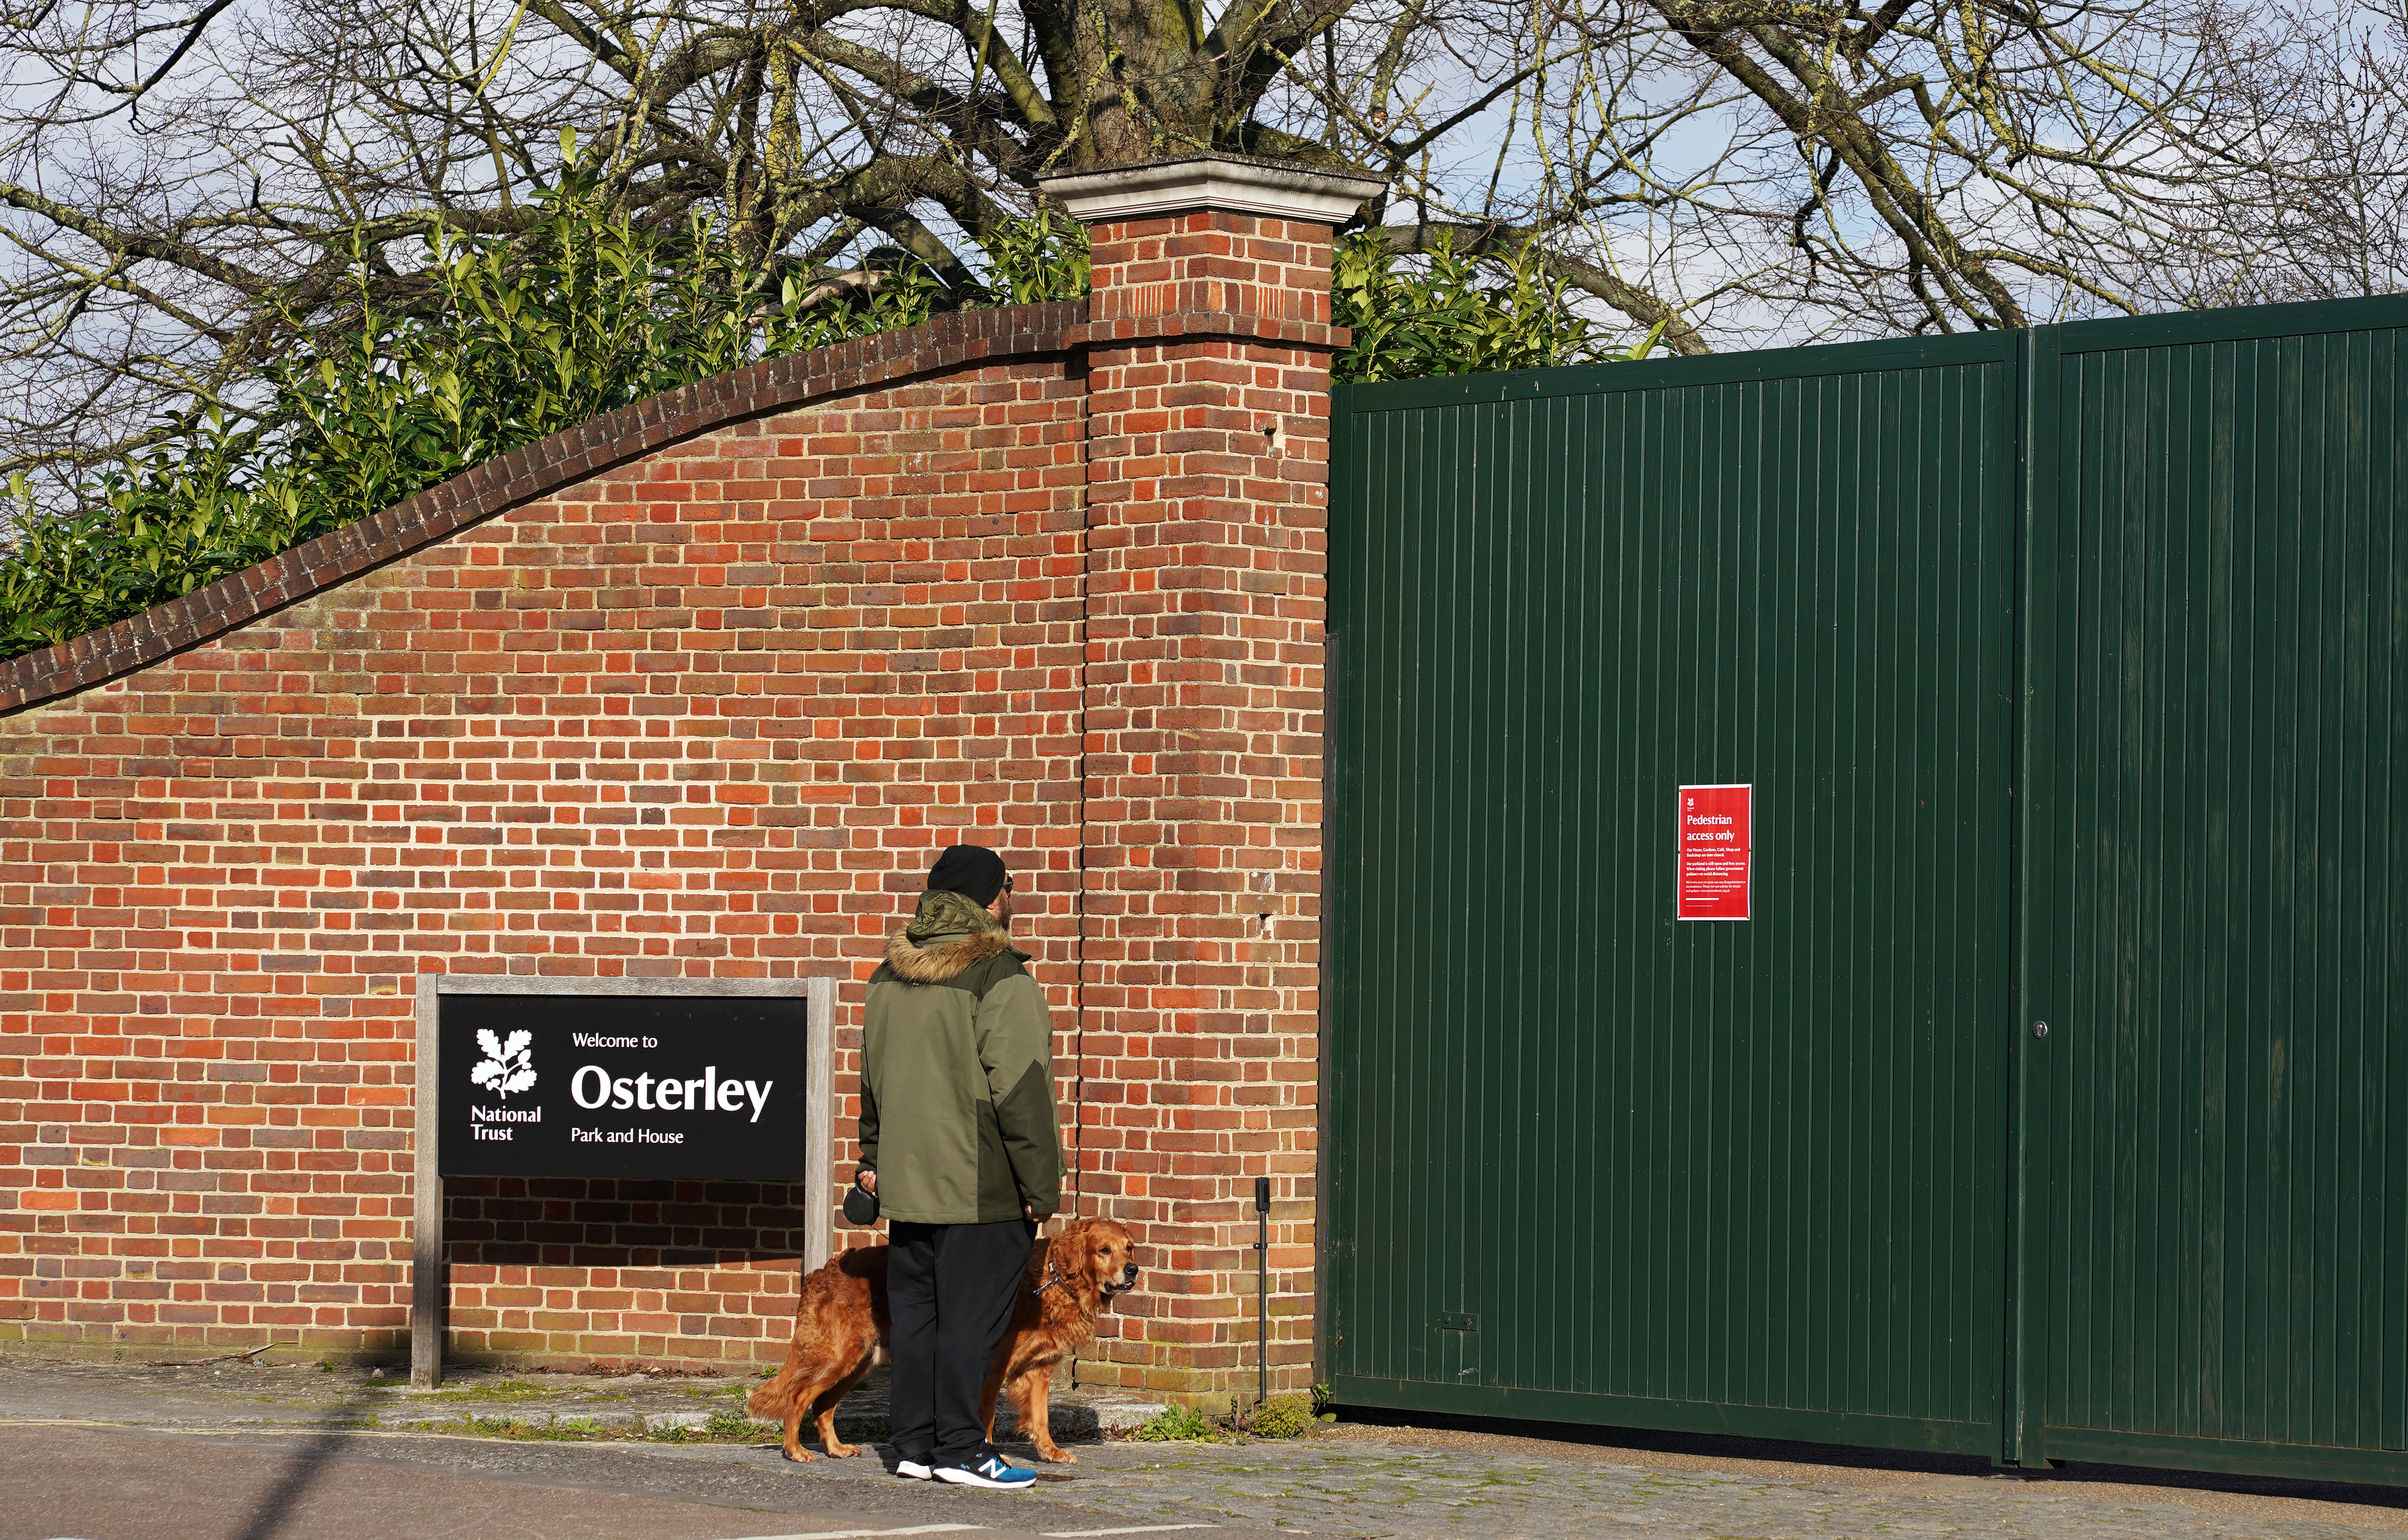 A dog walker looks at the signage the entrance for Osterley Park and House in Isleworth, London, after The National Trust announced it has shut down all of its parks and and gardens across the UK until further notice.